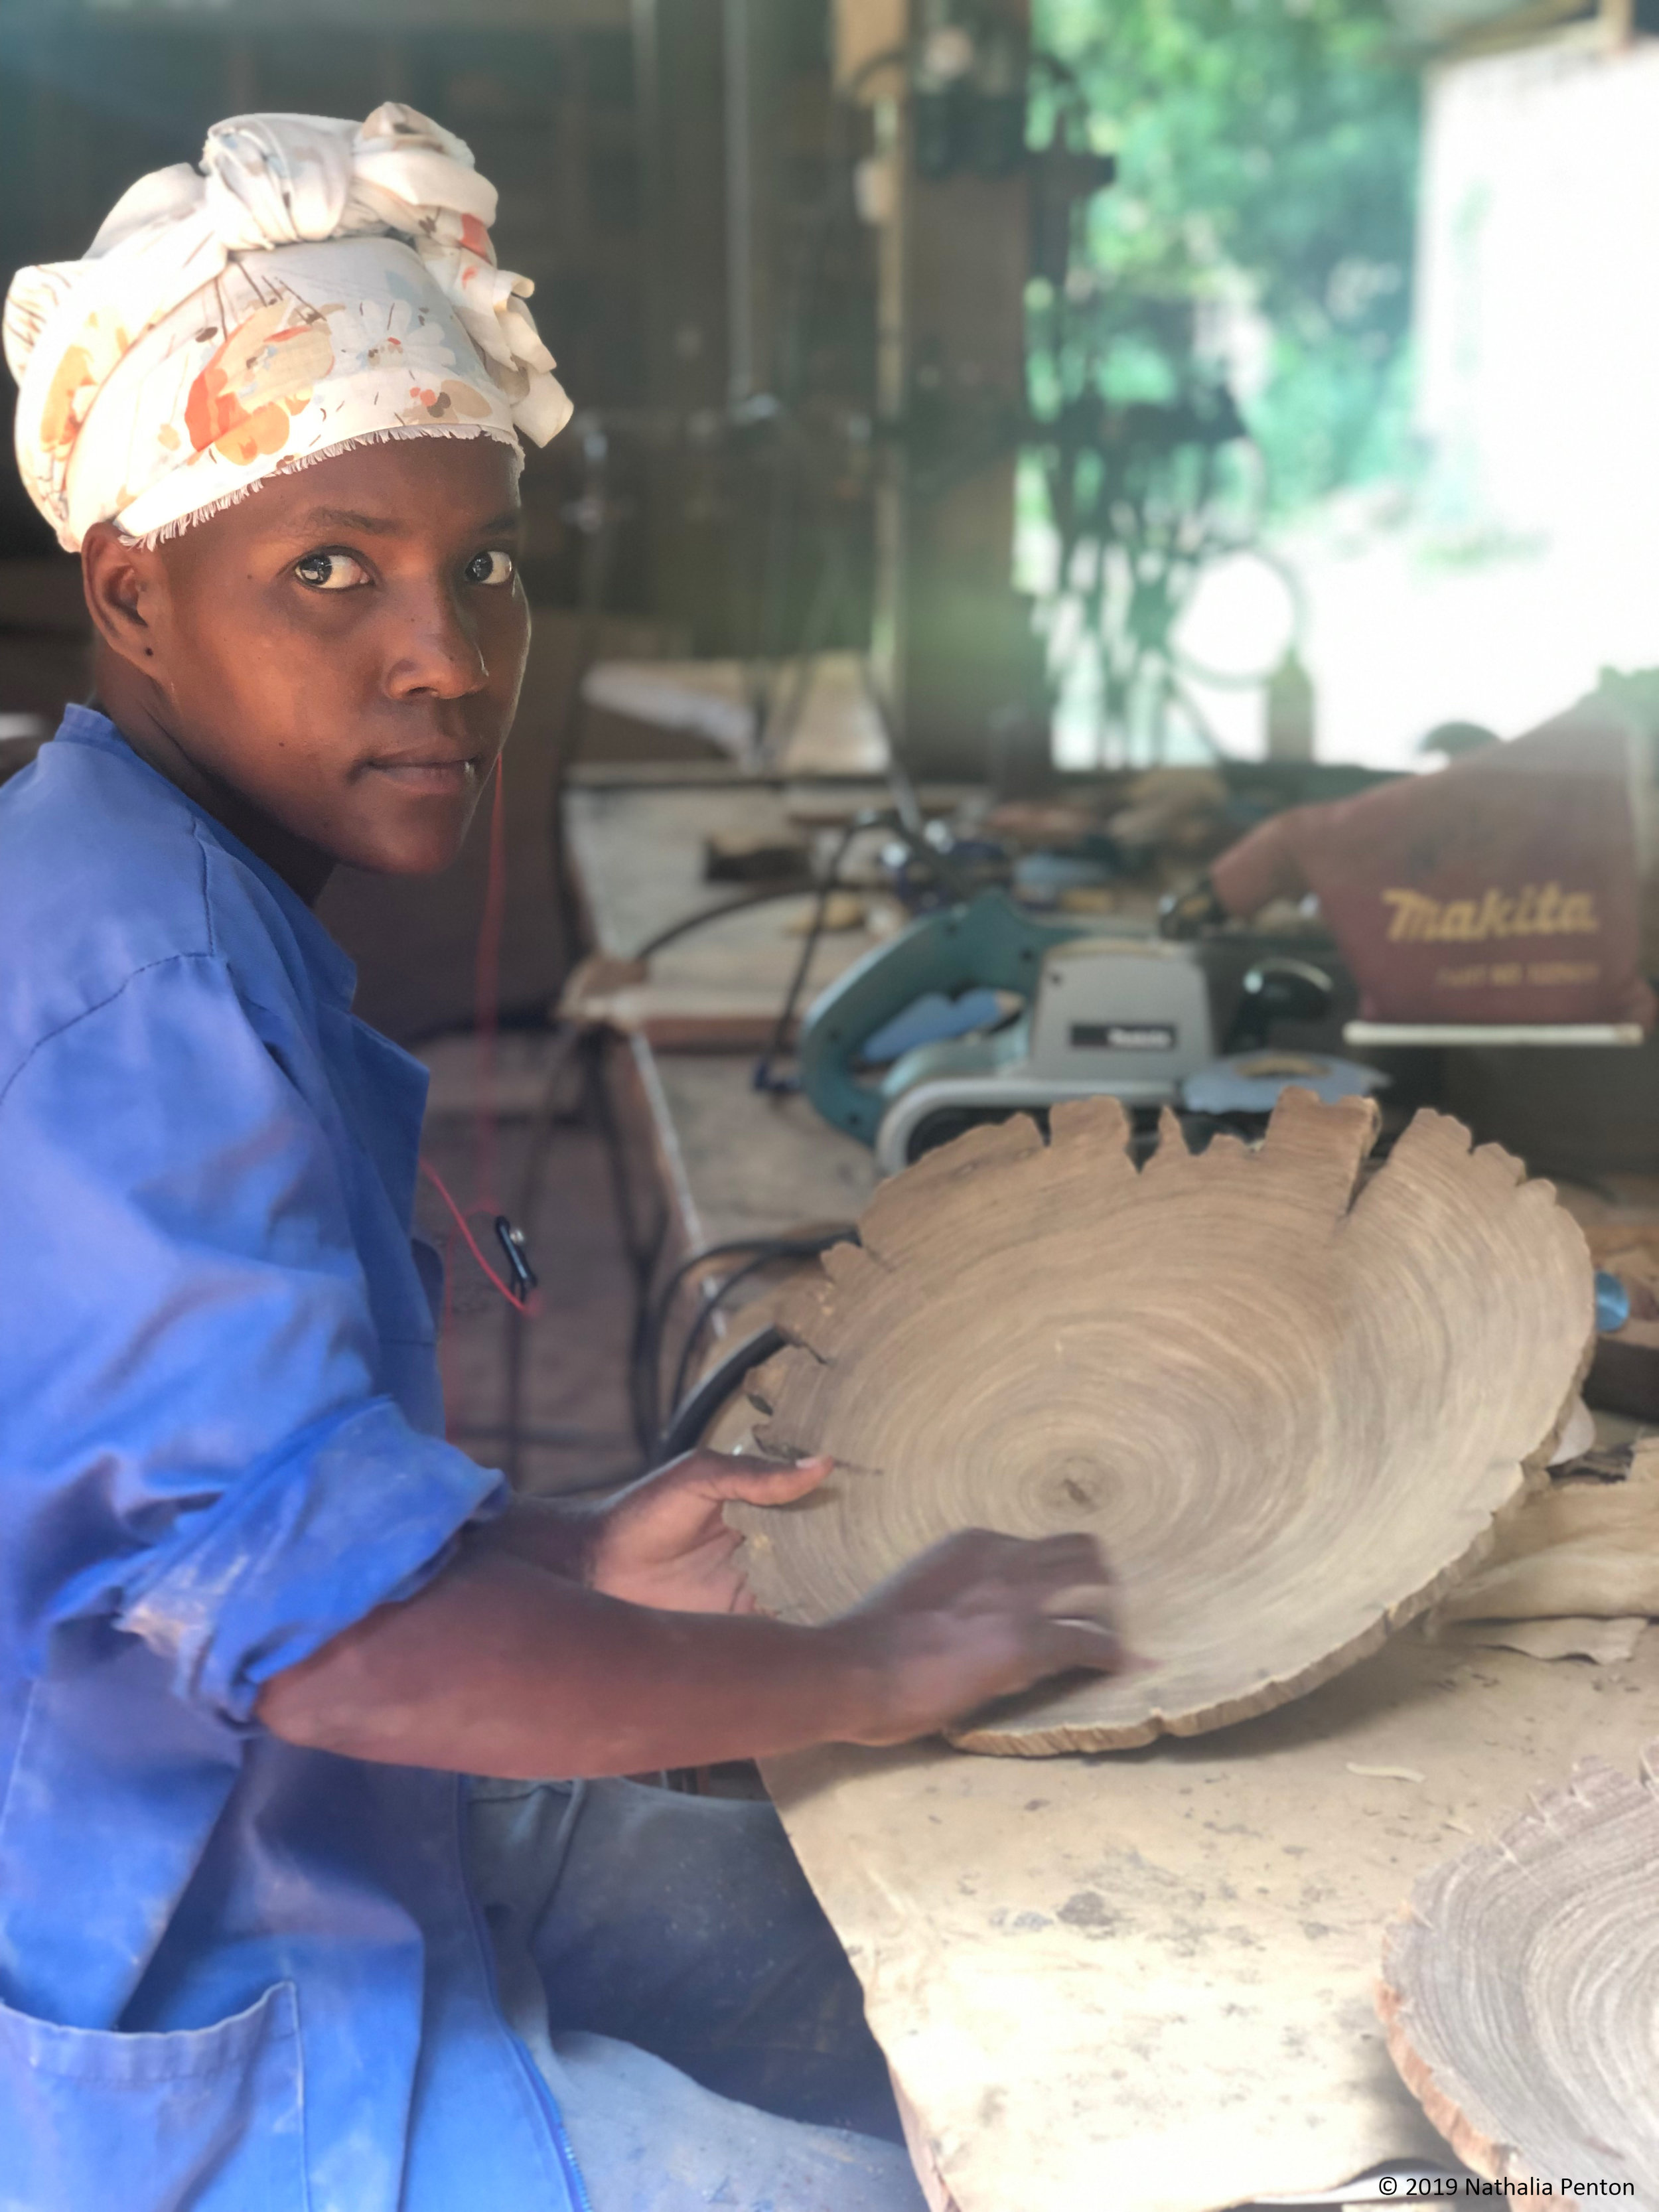 A woman working at the TCT Dalmann Sawmill, located on the Cortada 12 Forest Concession in Catapu, polishes a wooden plate made from circularly- and sustainably-sourced timber.